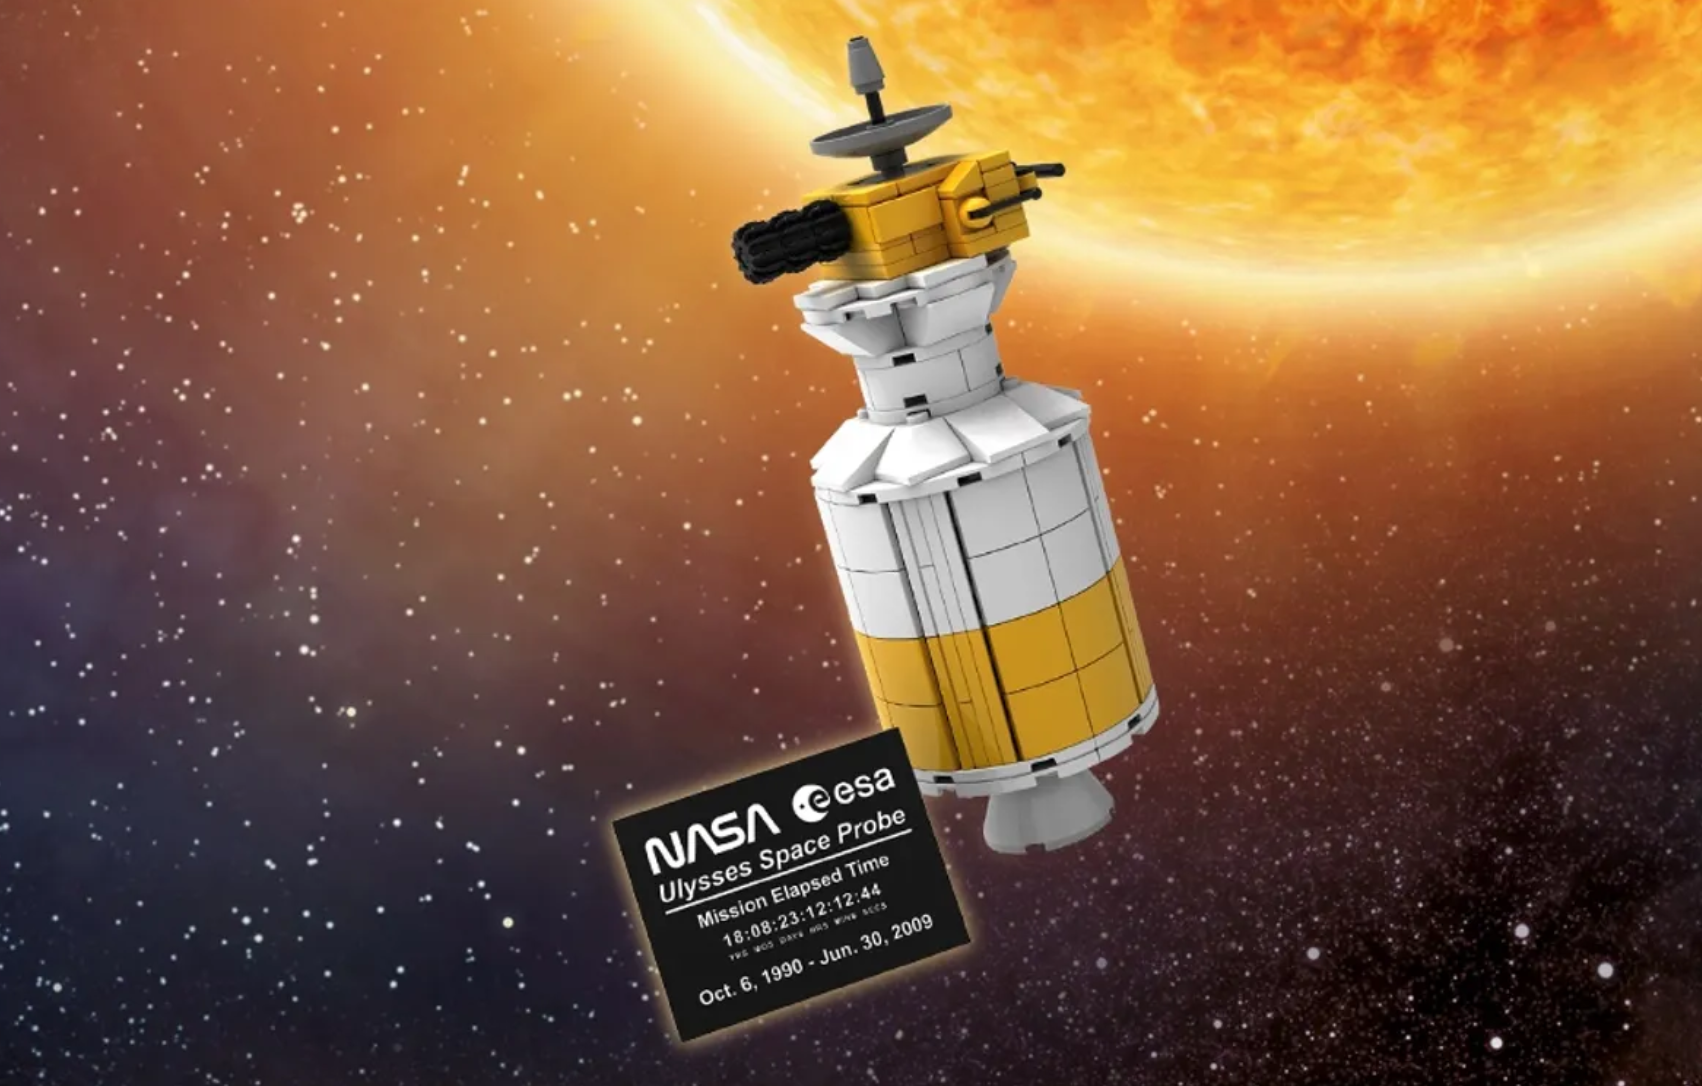 Double VIP Points Right Now, Ulysses Space Probe Available Tomorrow 4/14